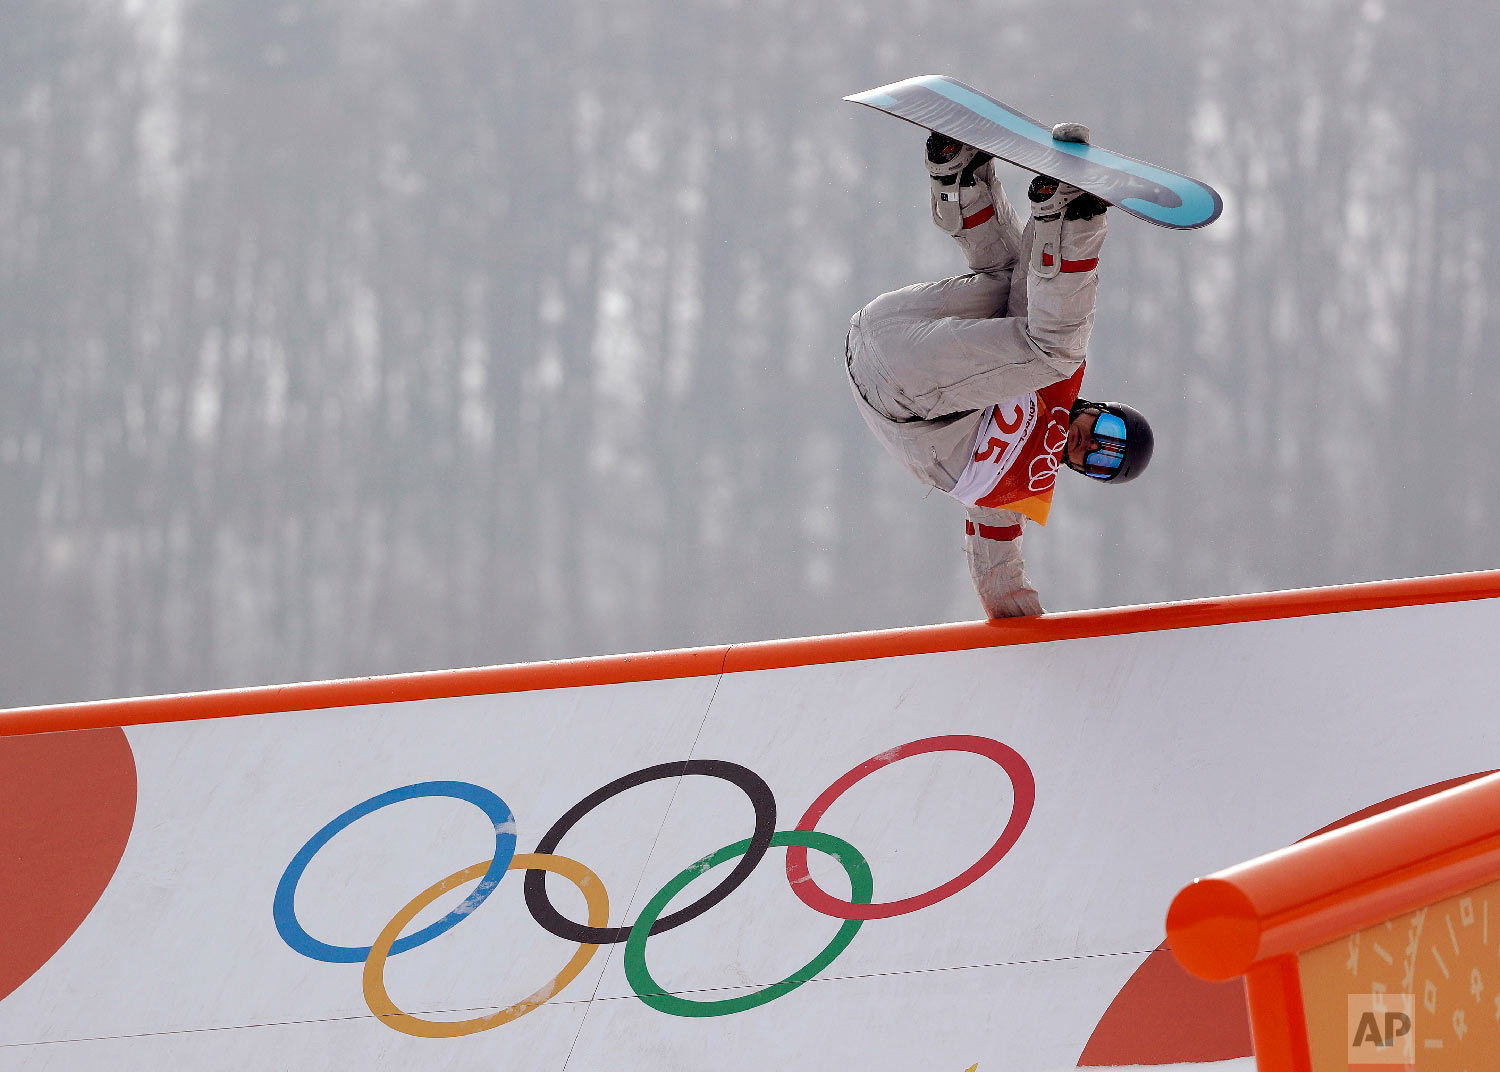 Ryan Stassel, of the United States, jumps during the men's slopestyle qualifying at Phoenix Snow Park at the 2018 Winter Olympics in Pyeongchang, South Korea, Saturday, Feb. 10, 2018. (AP Photo/Gregory Bull)